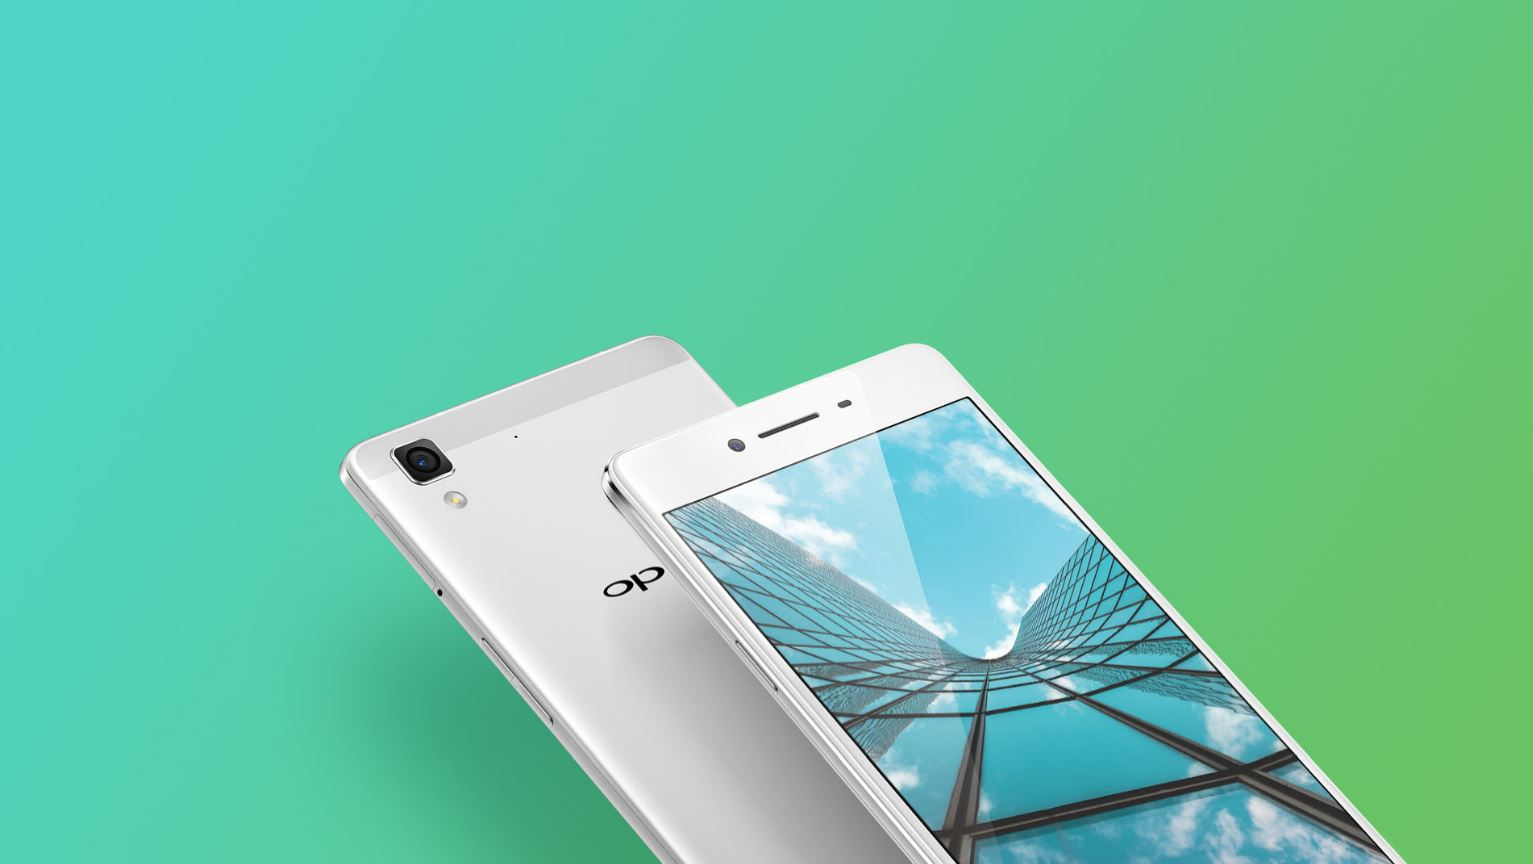 Oppo India Mobile Complaints Consumerboard 7a 16gb Putih